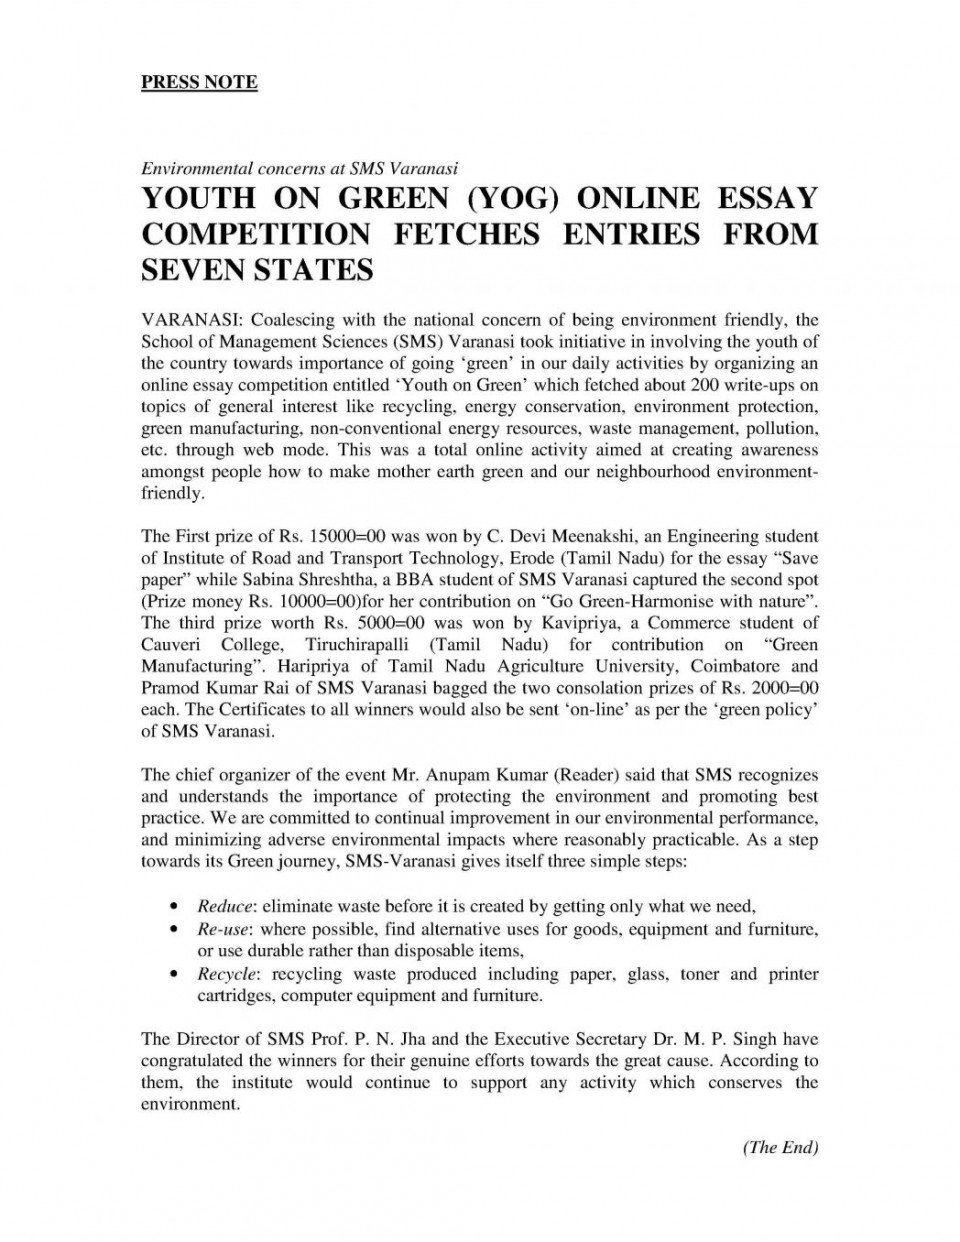 020 Best Essays For College Essay On Good Habits How Tot Application Online Yog Press Re About Yourself Examples Your Background Failure Prompt Off Hook 1048x1356 Example Amazing To Start An Bad With A Question Ways Definition 960